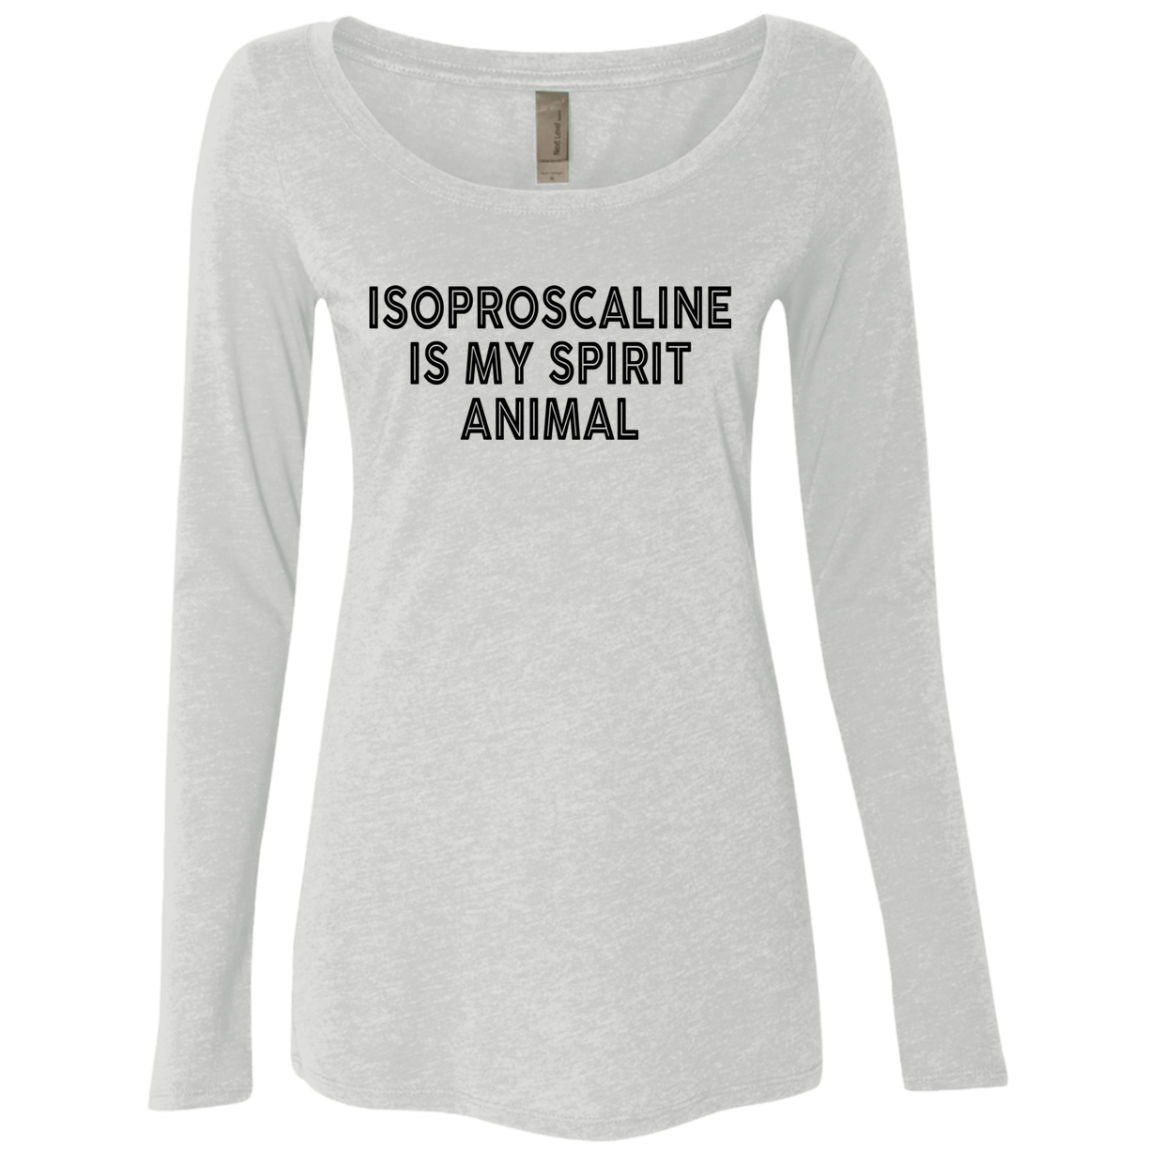 Isoproscaline Is My Spirit Animal Women's Long Sleeve Tee